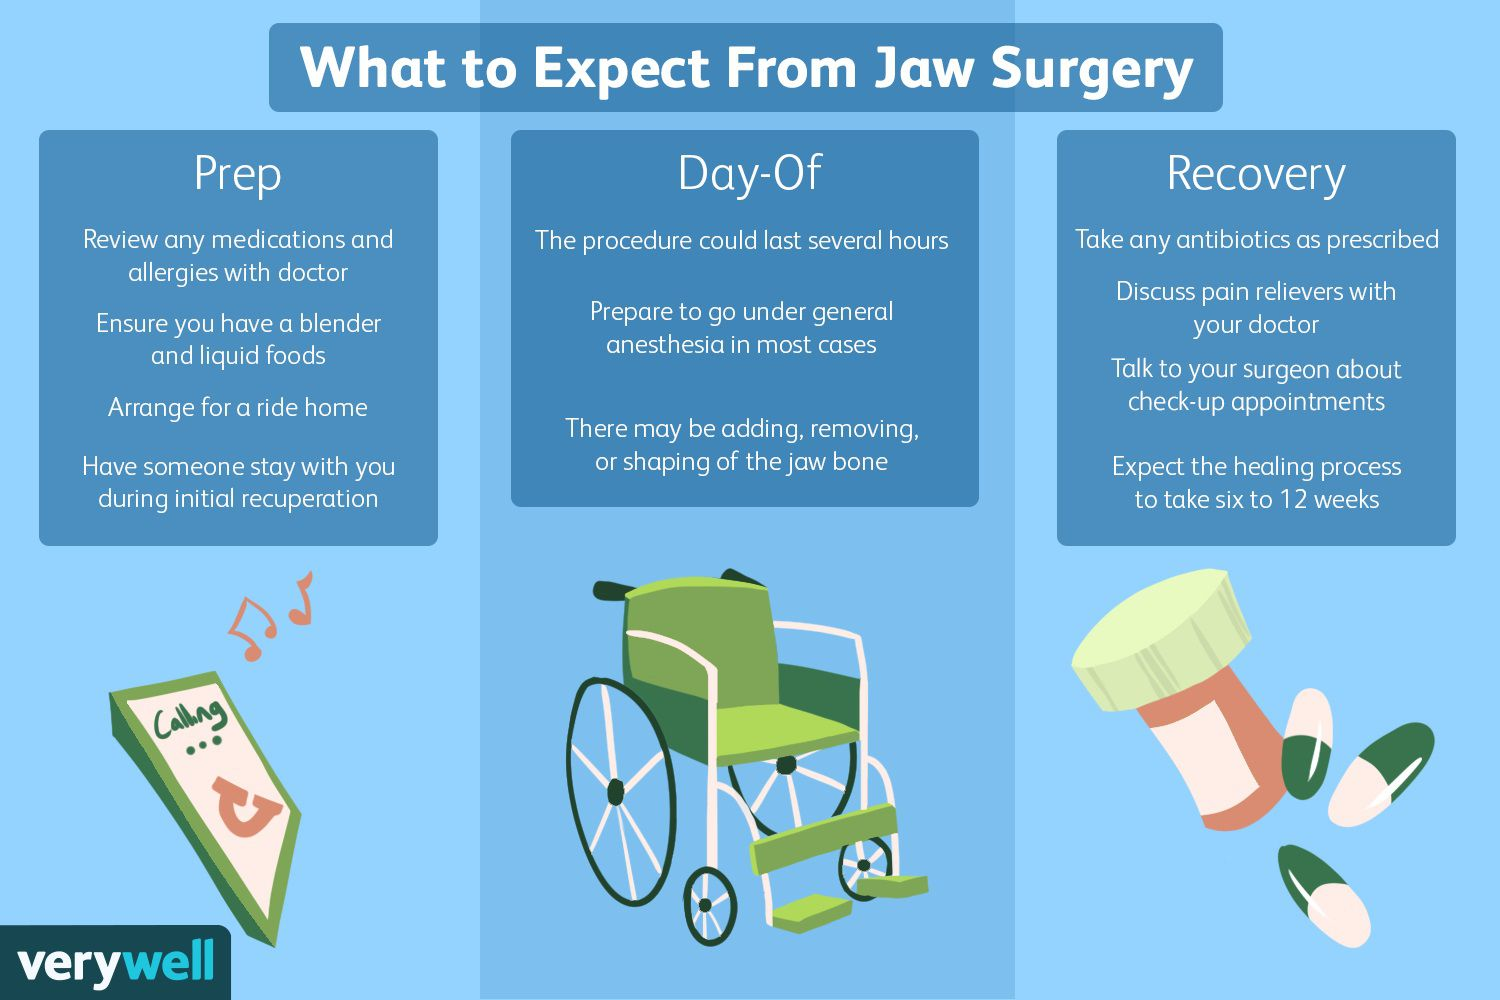 What to Expect From Jaw Surgery